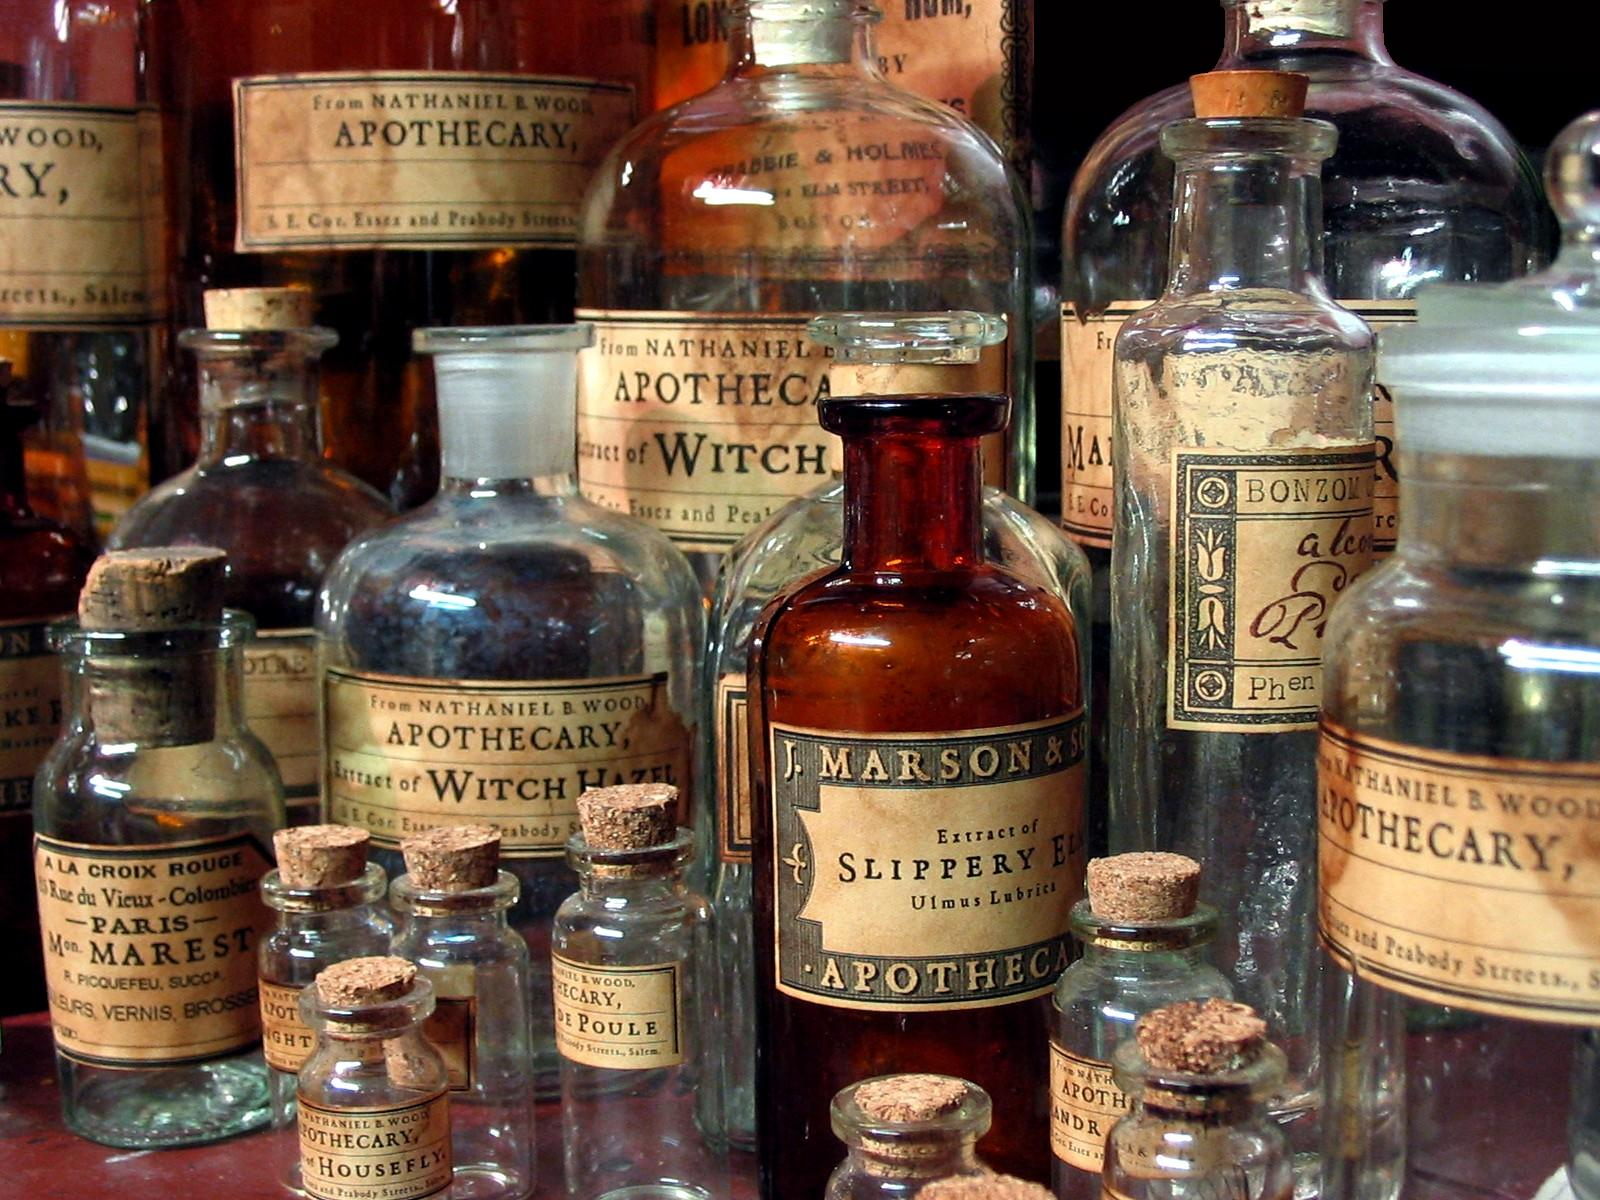 daryl mcmahon apothecary bottles and labels